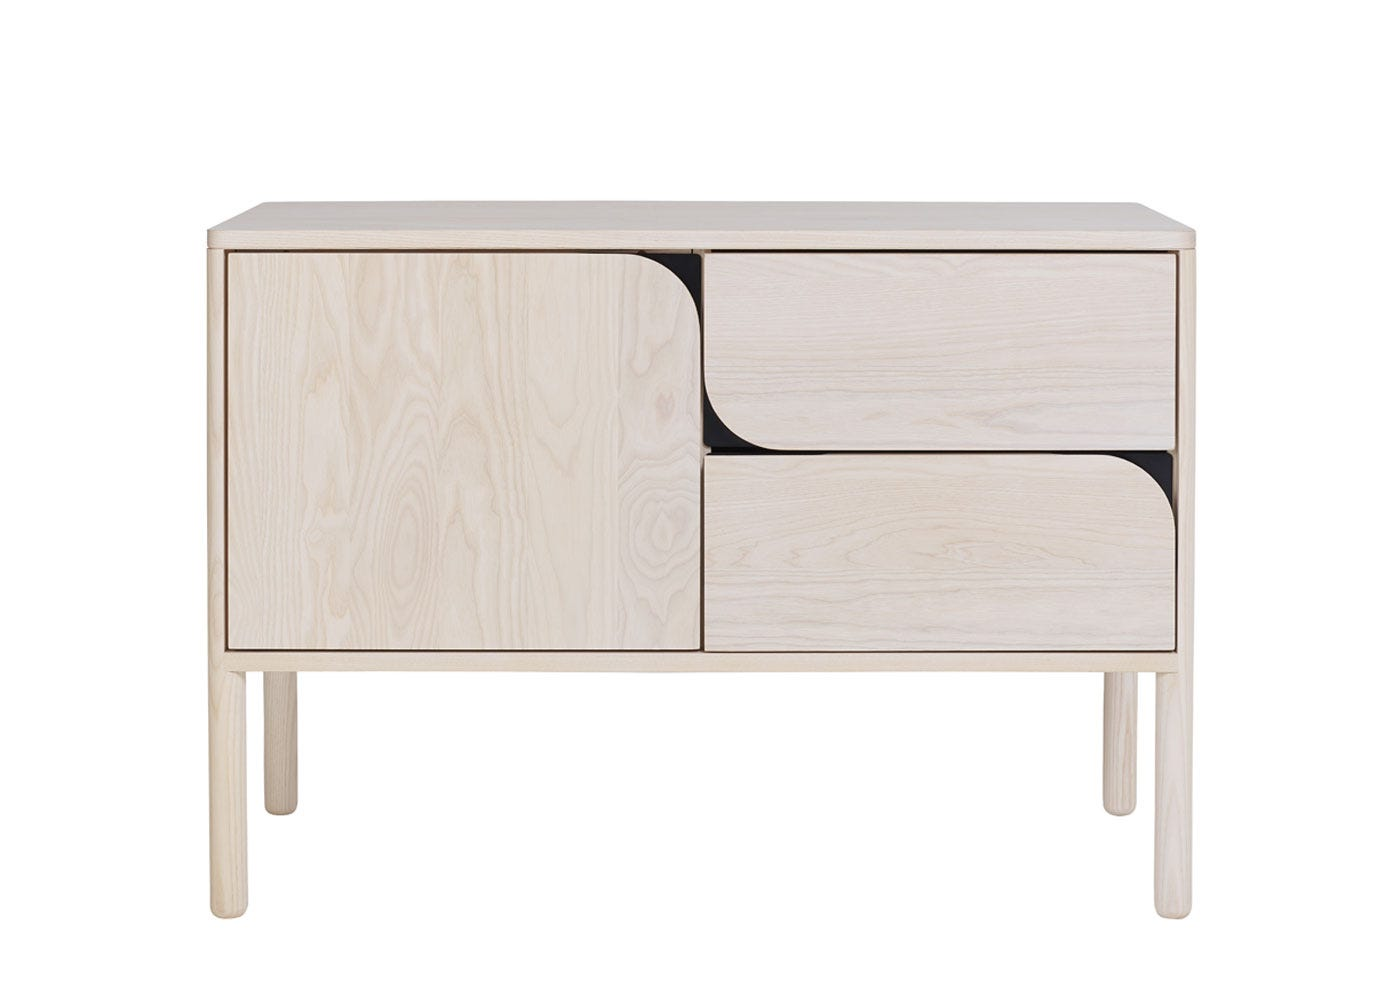 As shown: Verso Sideboard Small Whitened Ash - Front profile